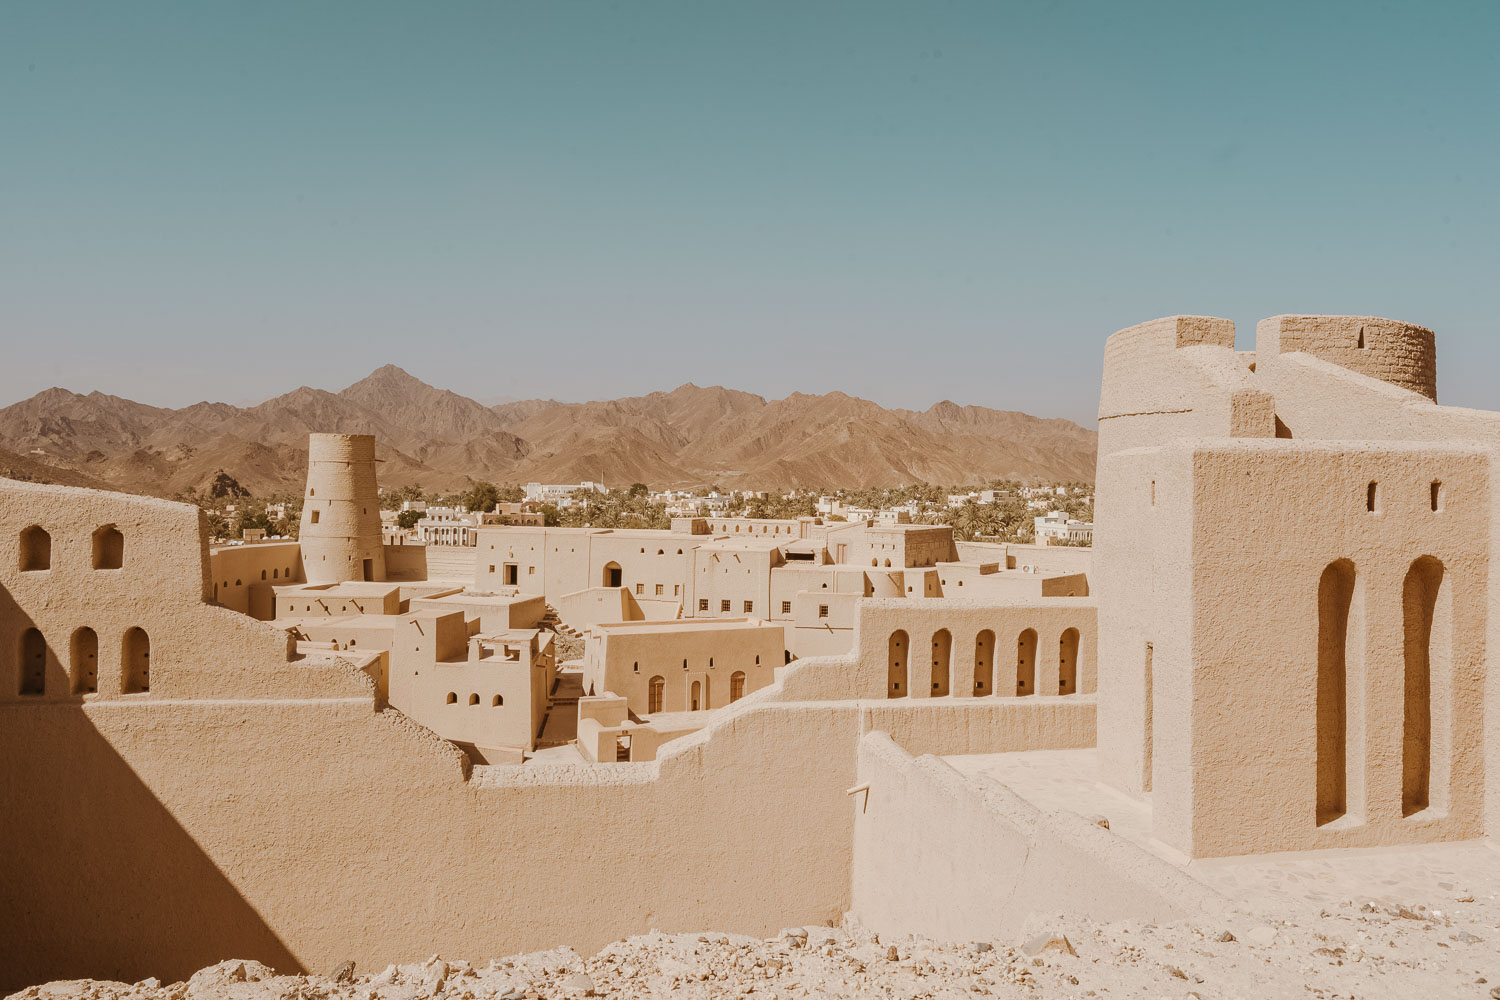 Bahla-Fort-What-to-do-in-Nizwa-Elen-Pradera.jpg